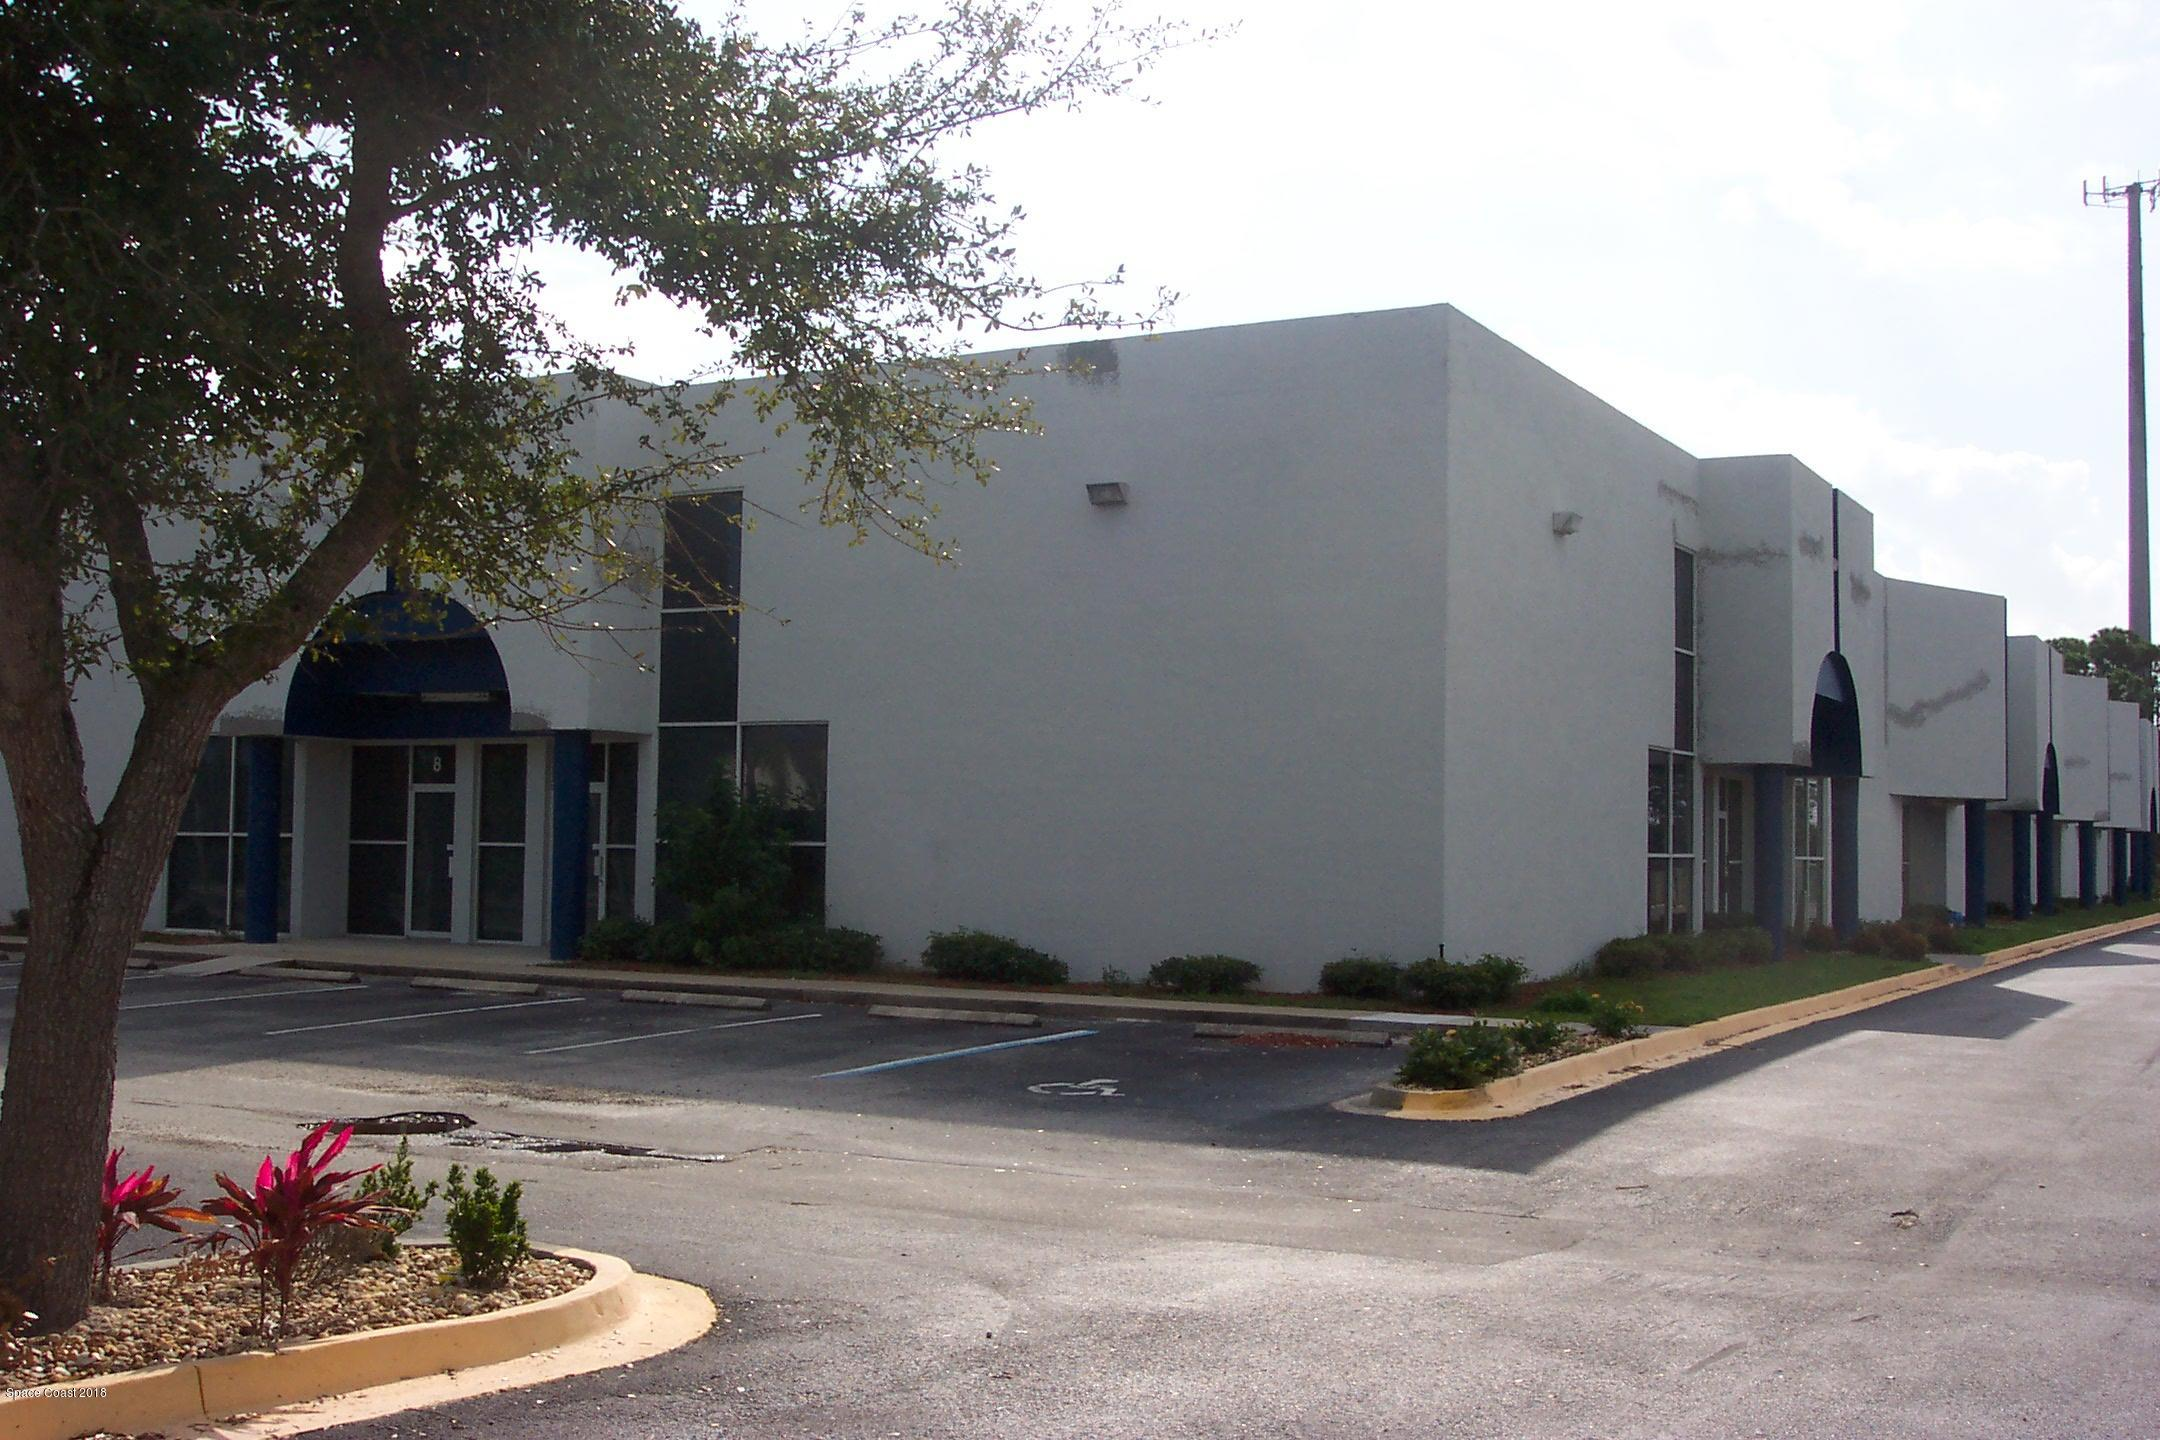 Commercial for Rent at 2300 Commerce Park 2300 Commerce Park Palm Bay, Florida 32905 United States